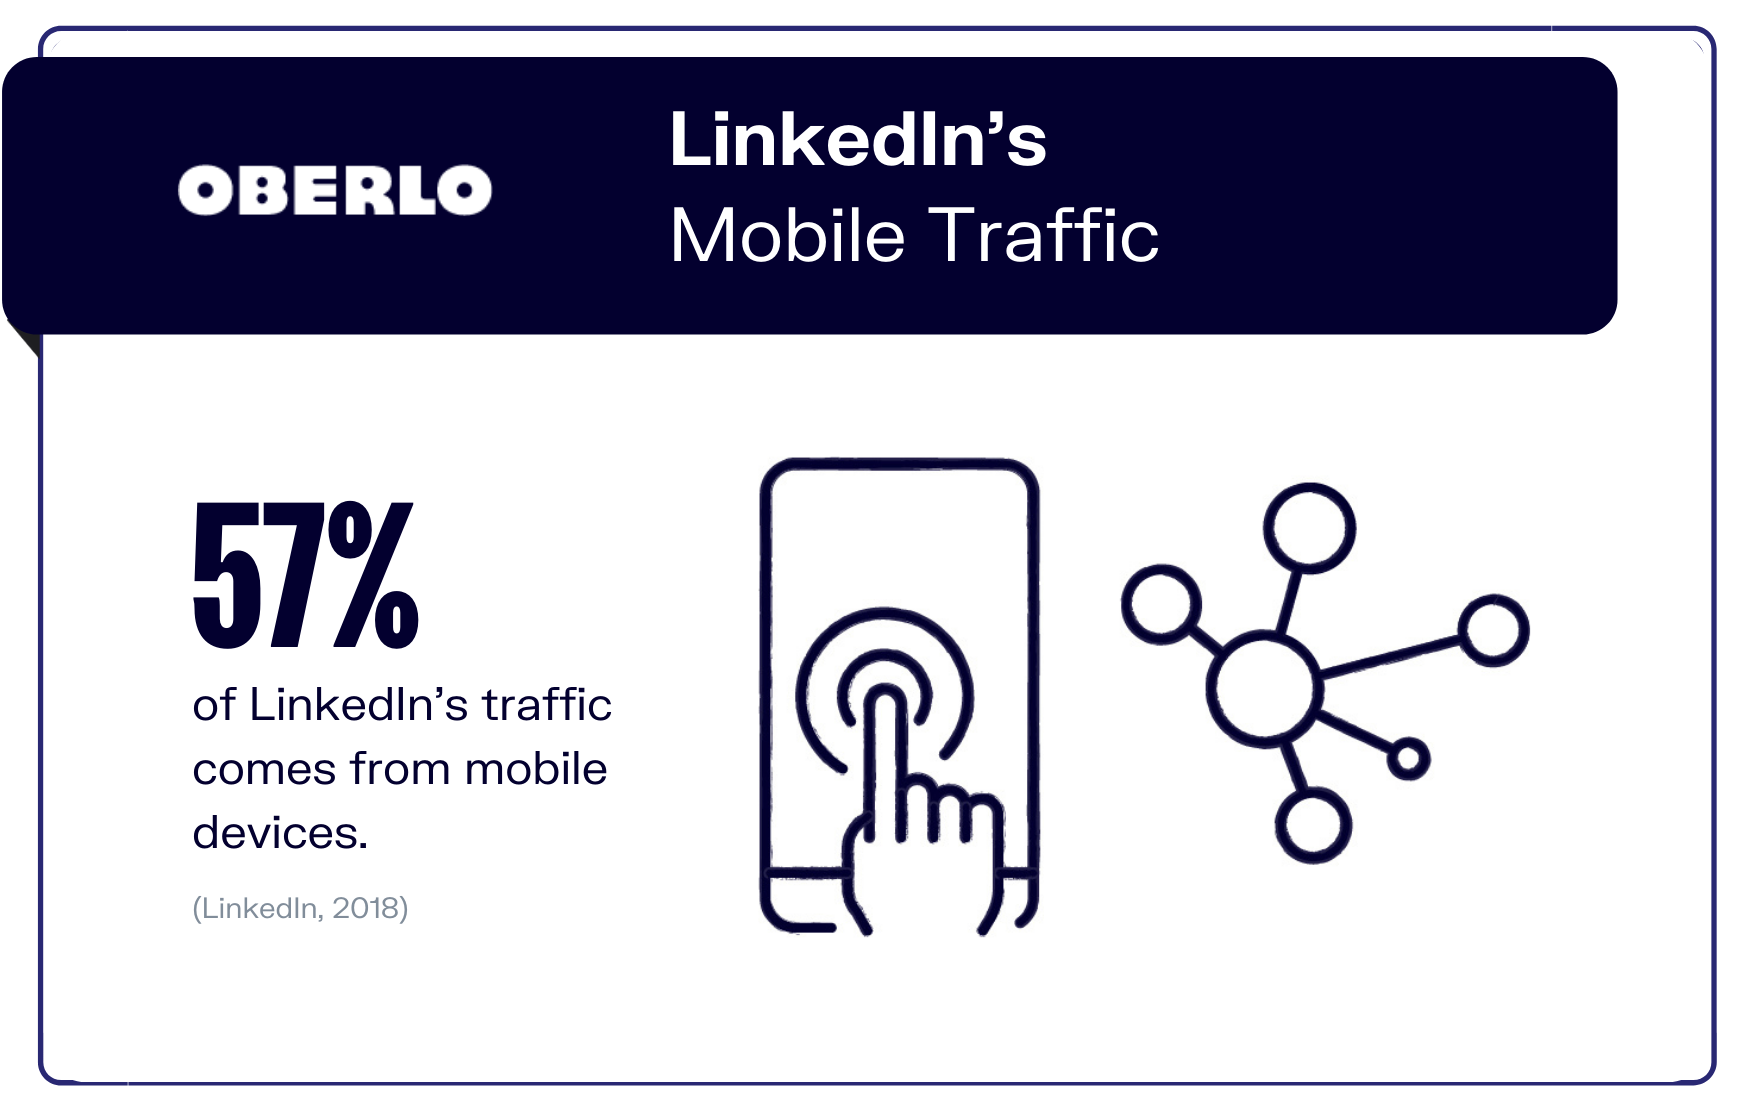 LinkedIn's Mobile Traffic